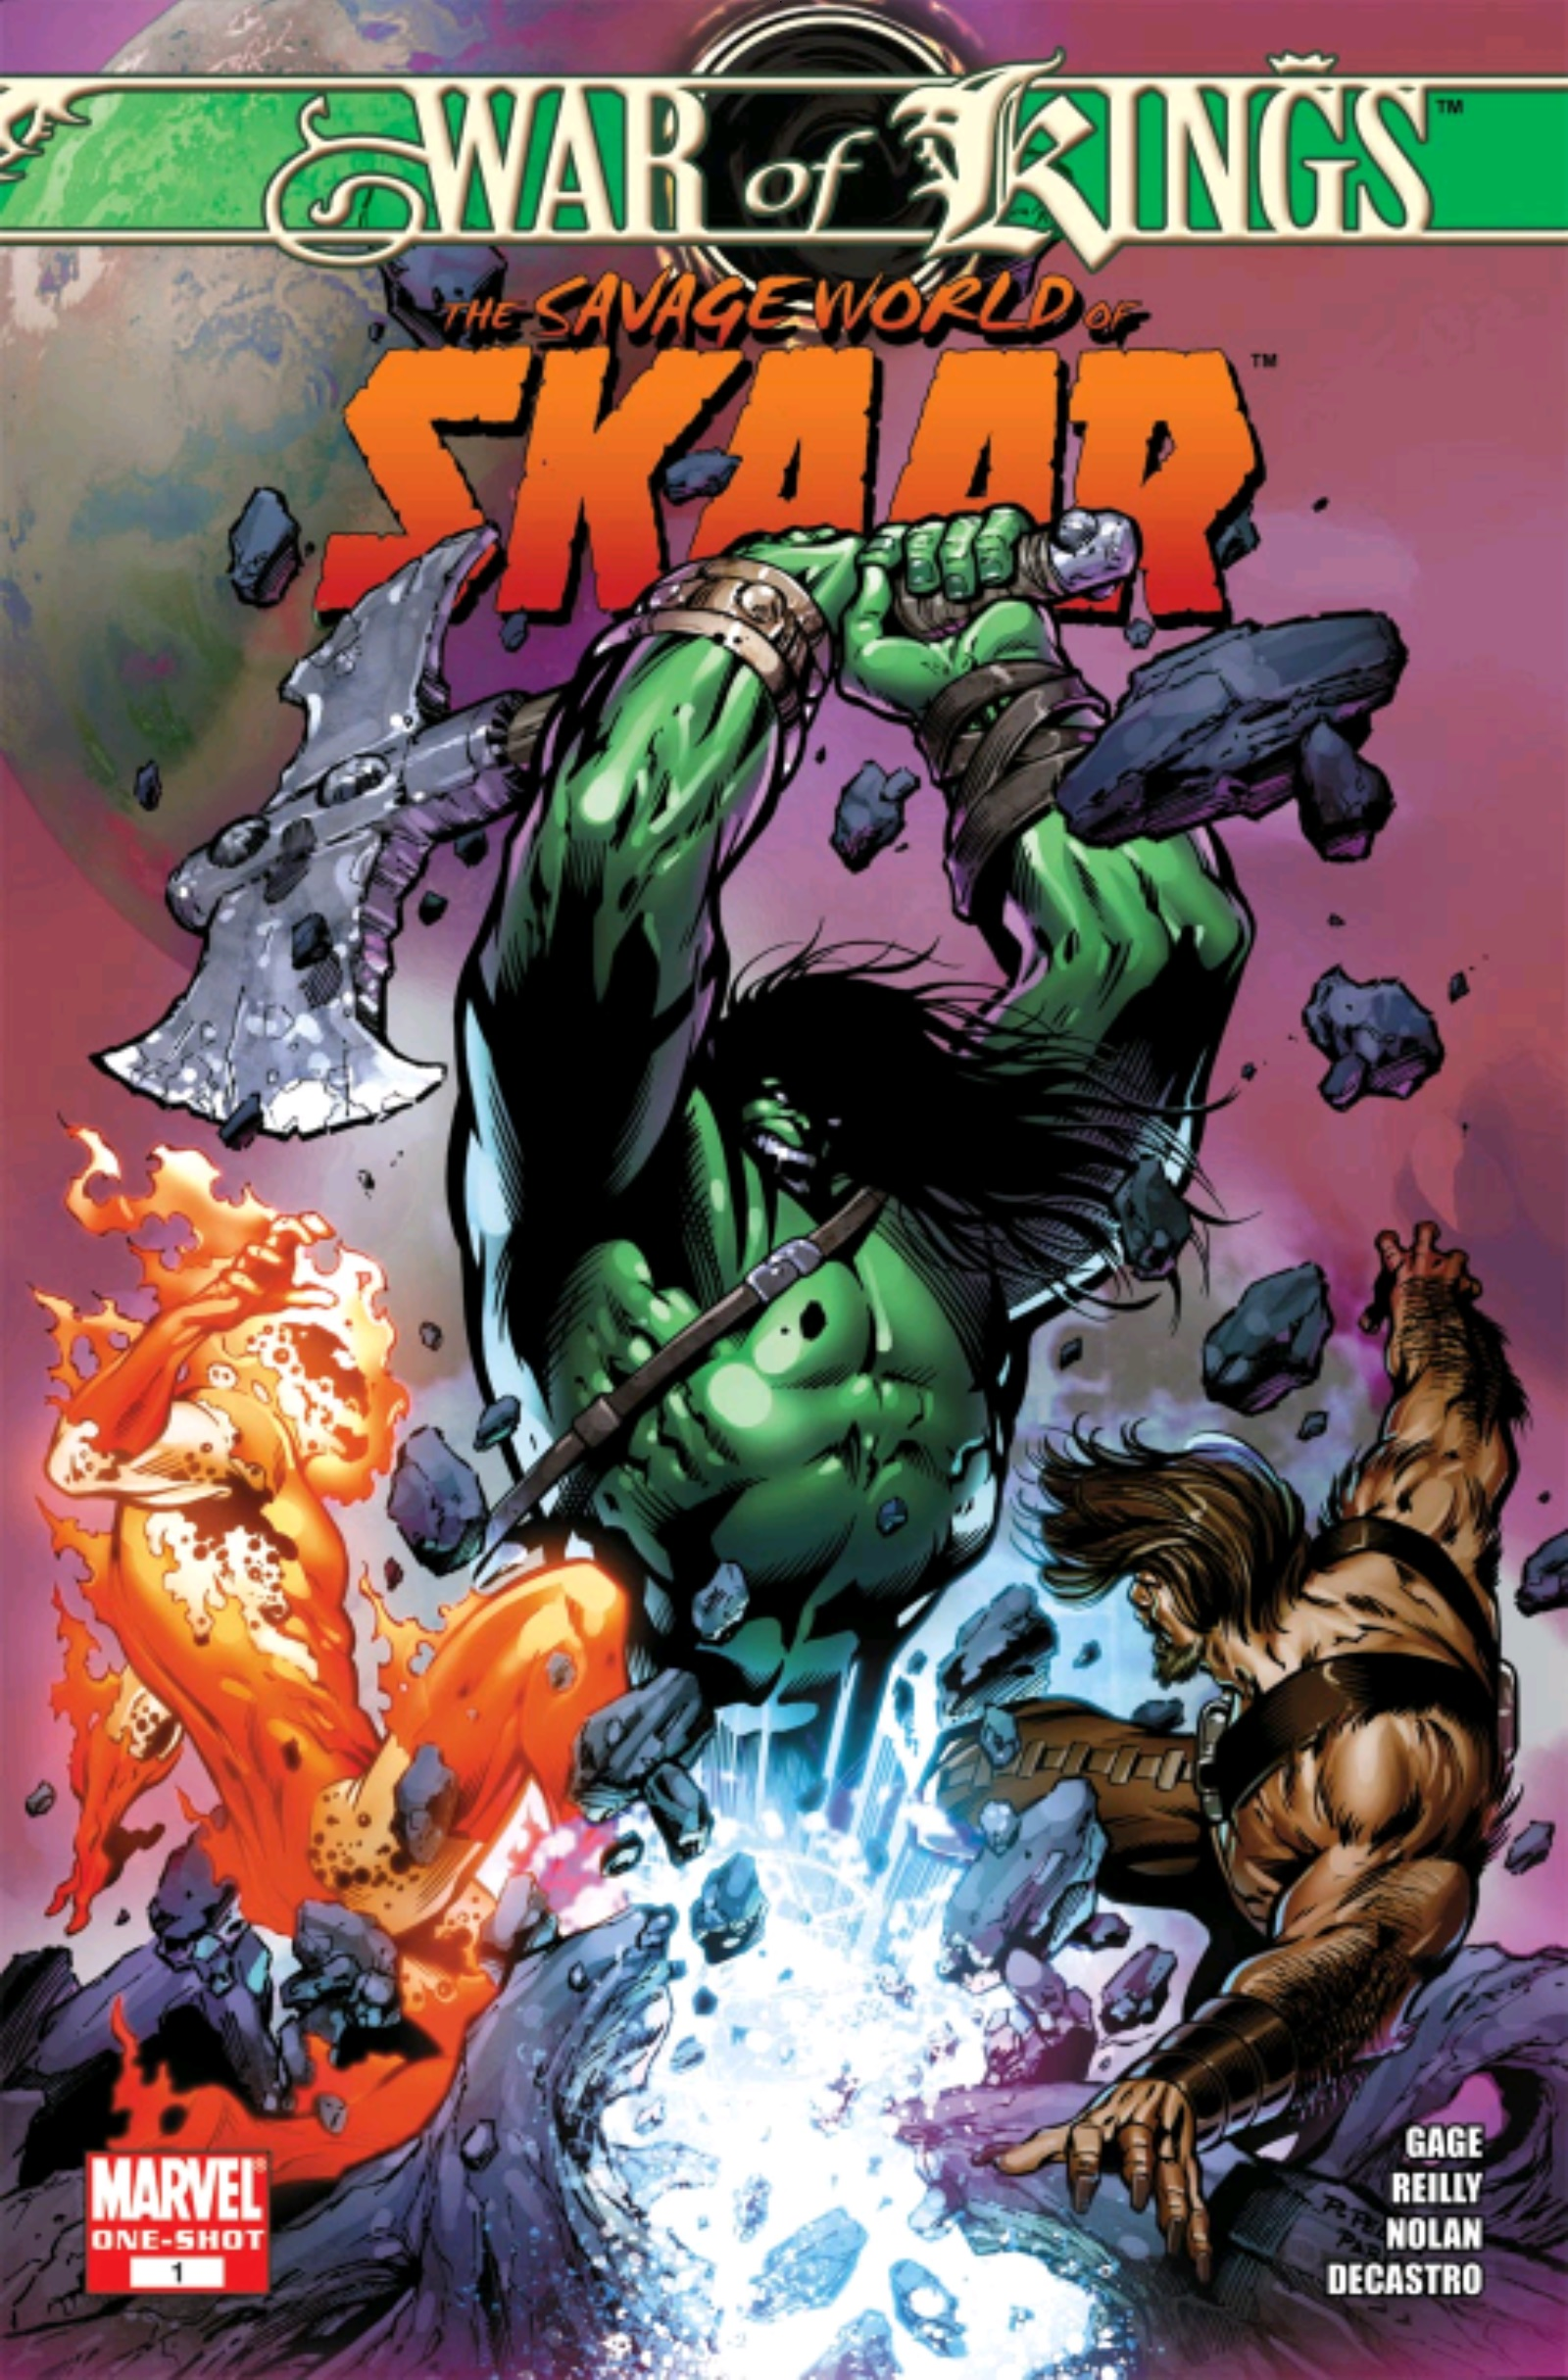 War of Kings Savage World of Skaar Vol 1 1